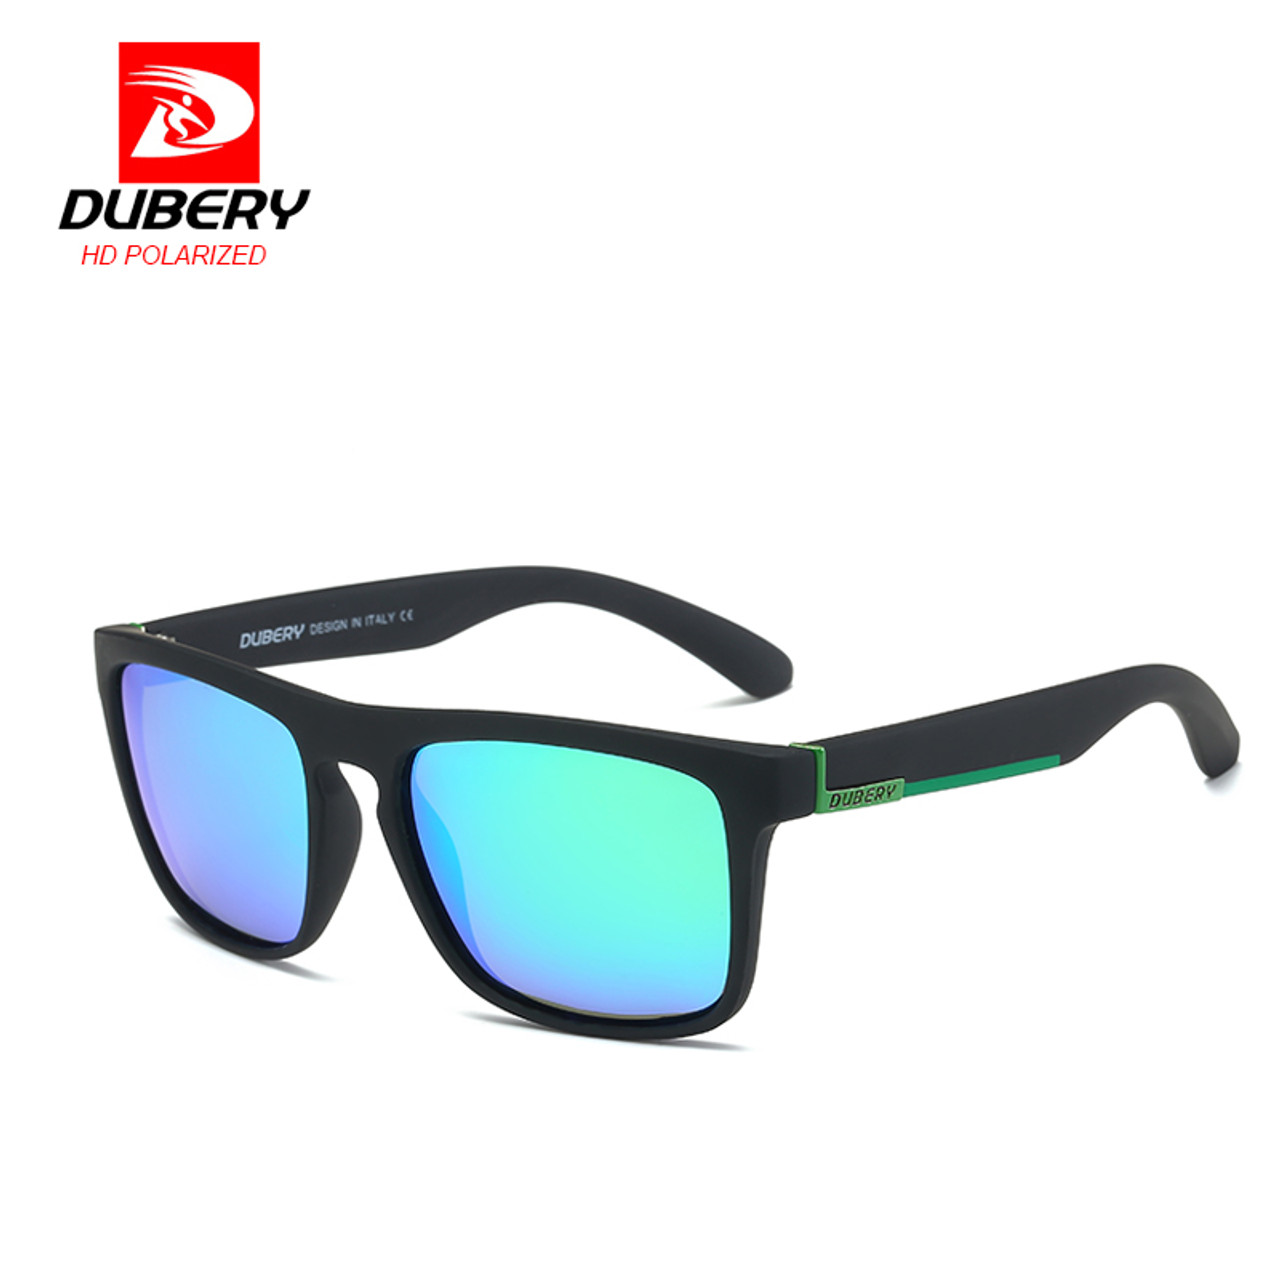 c1ab298a6a DUBERY Polarized Sunglasses Men's Aviation Driving Shades Male Sun Glasses  For Men 2017 Luxury Brand Designer ...